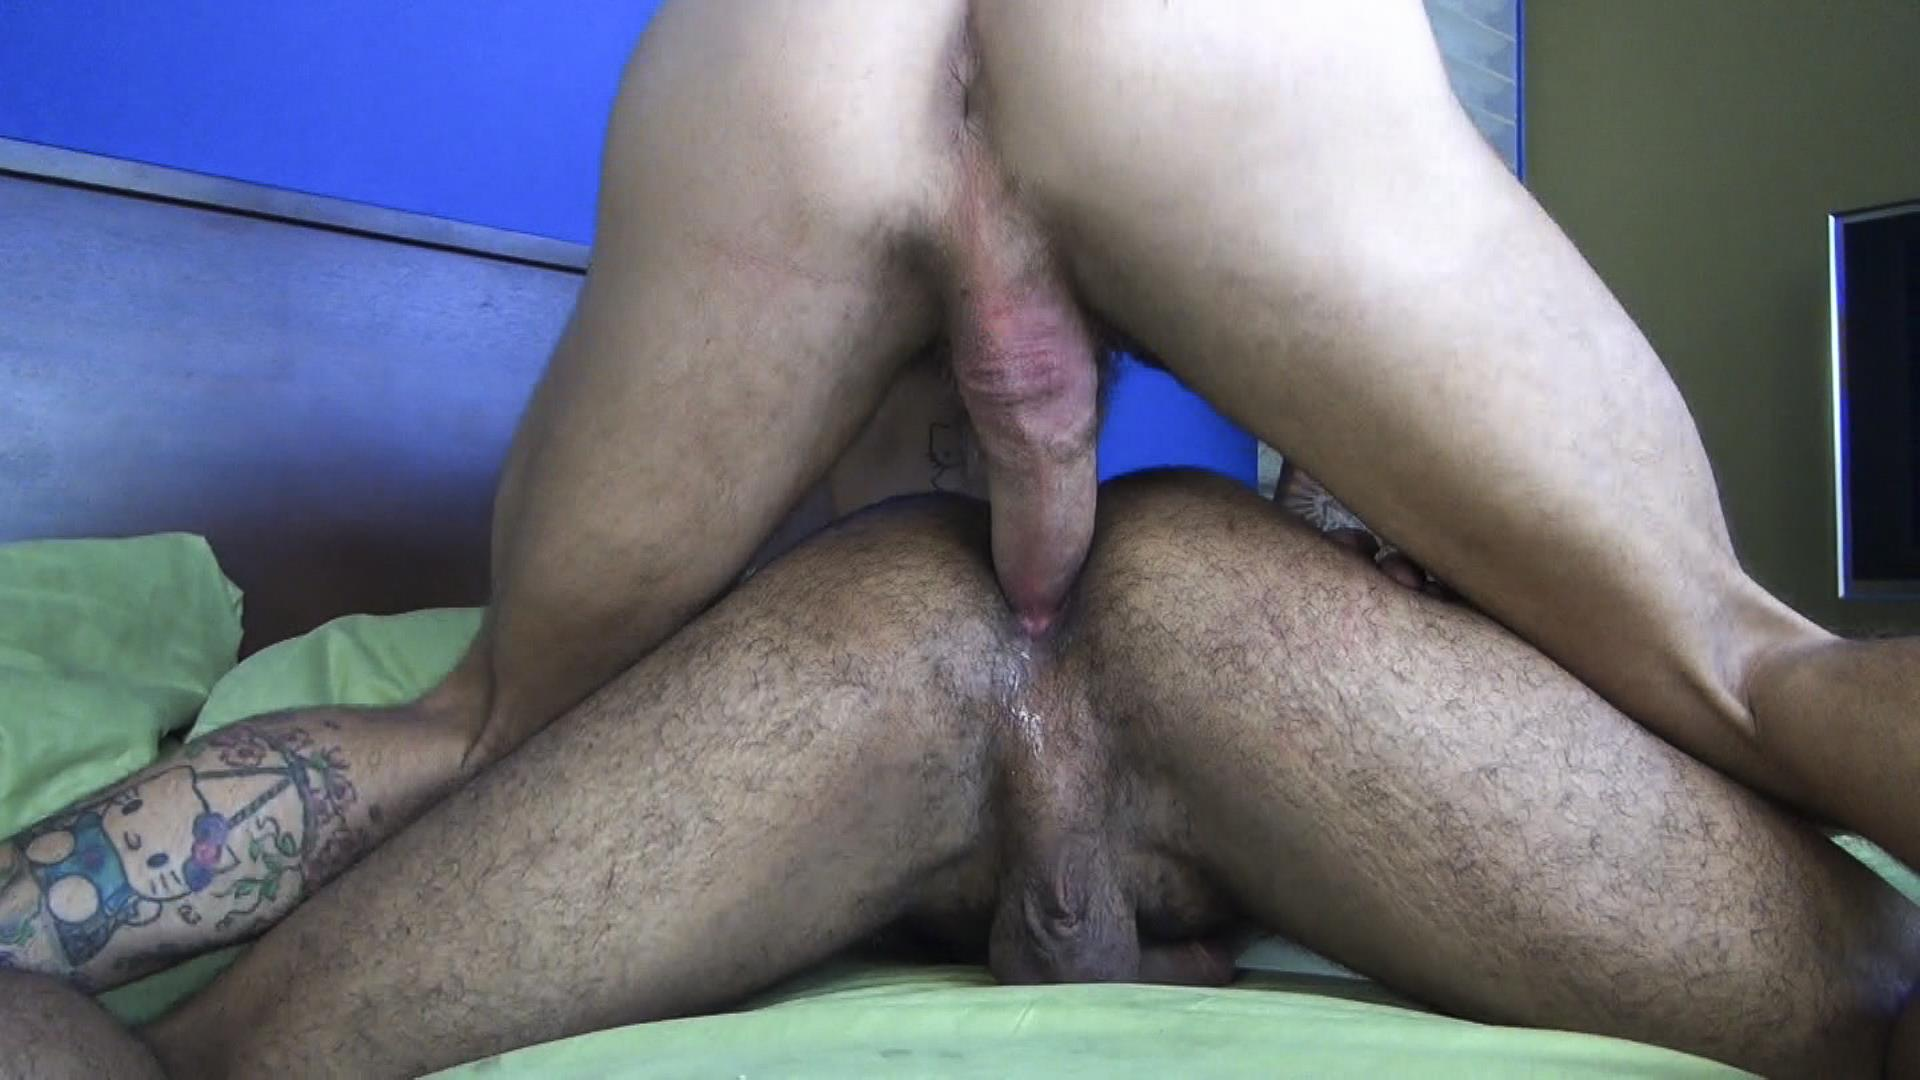 gay daddies jerking off and cumming sex porn videos com